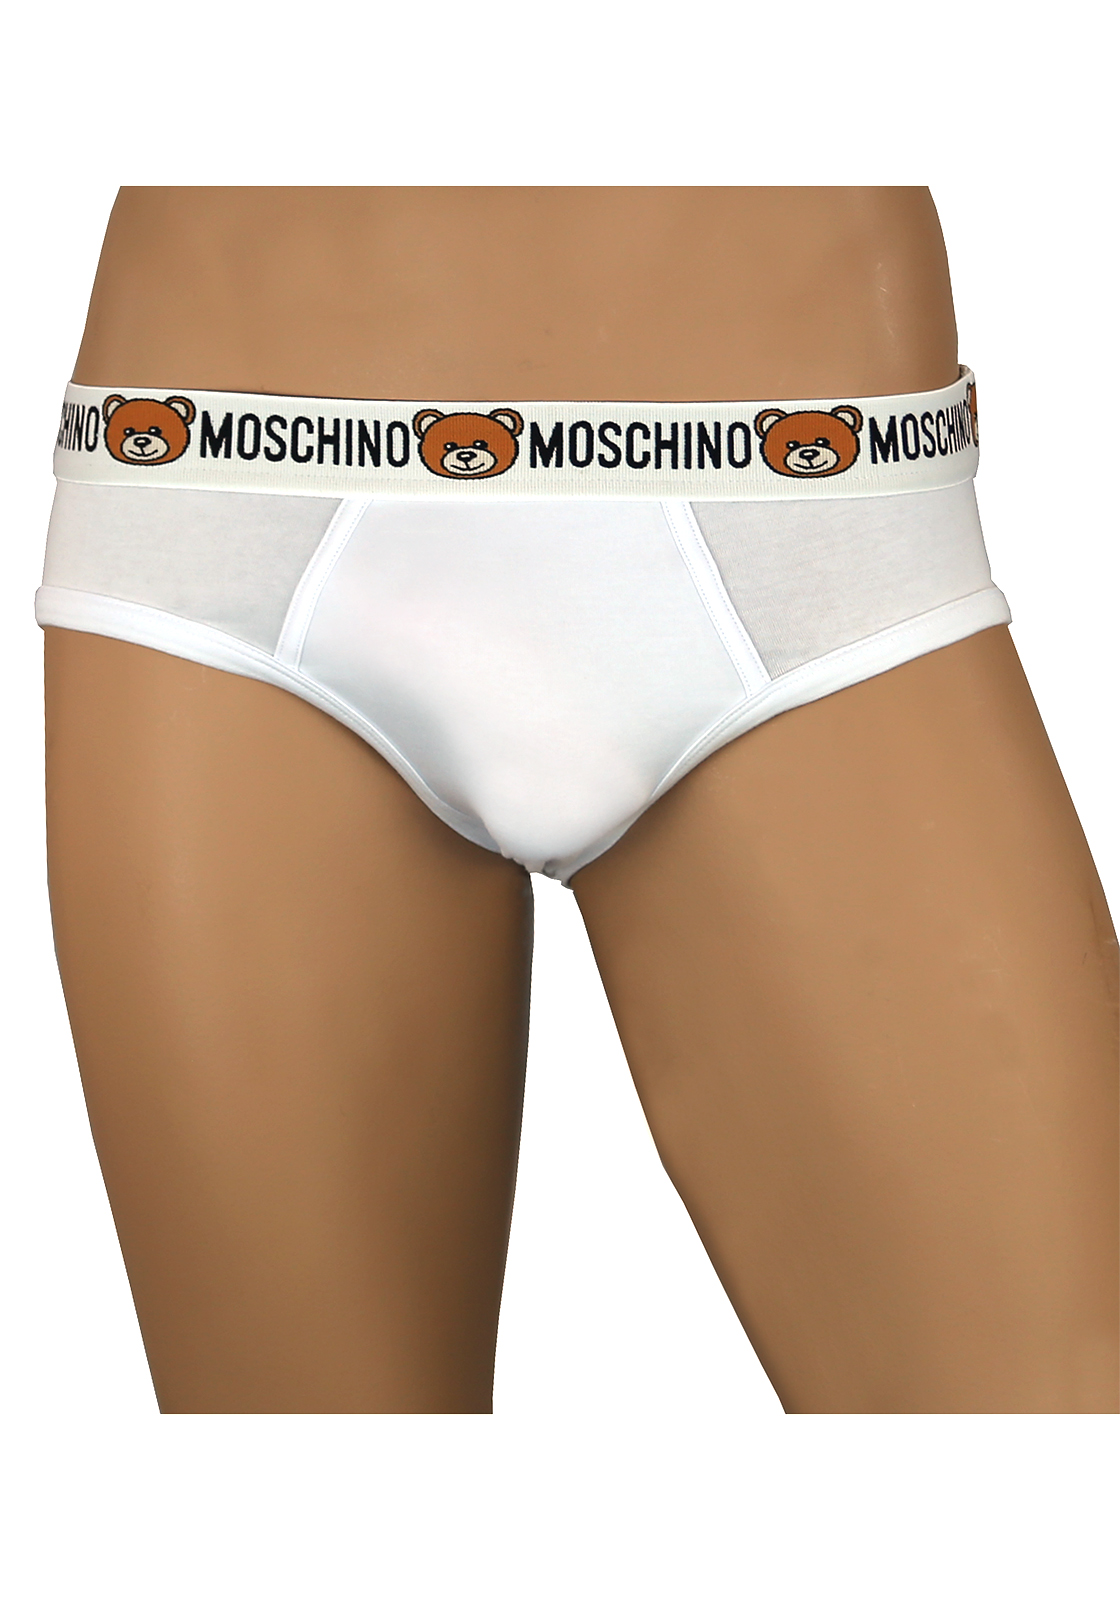 Moschino Brief Underbear | White